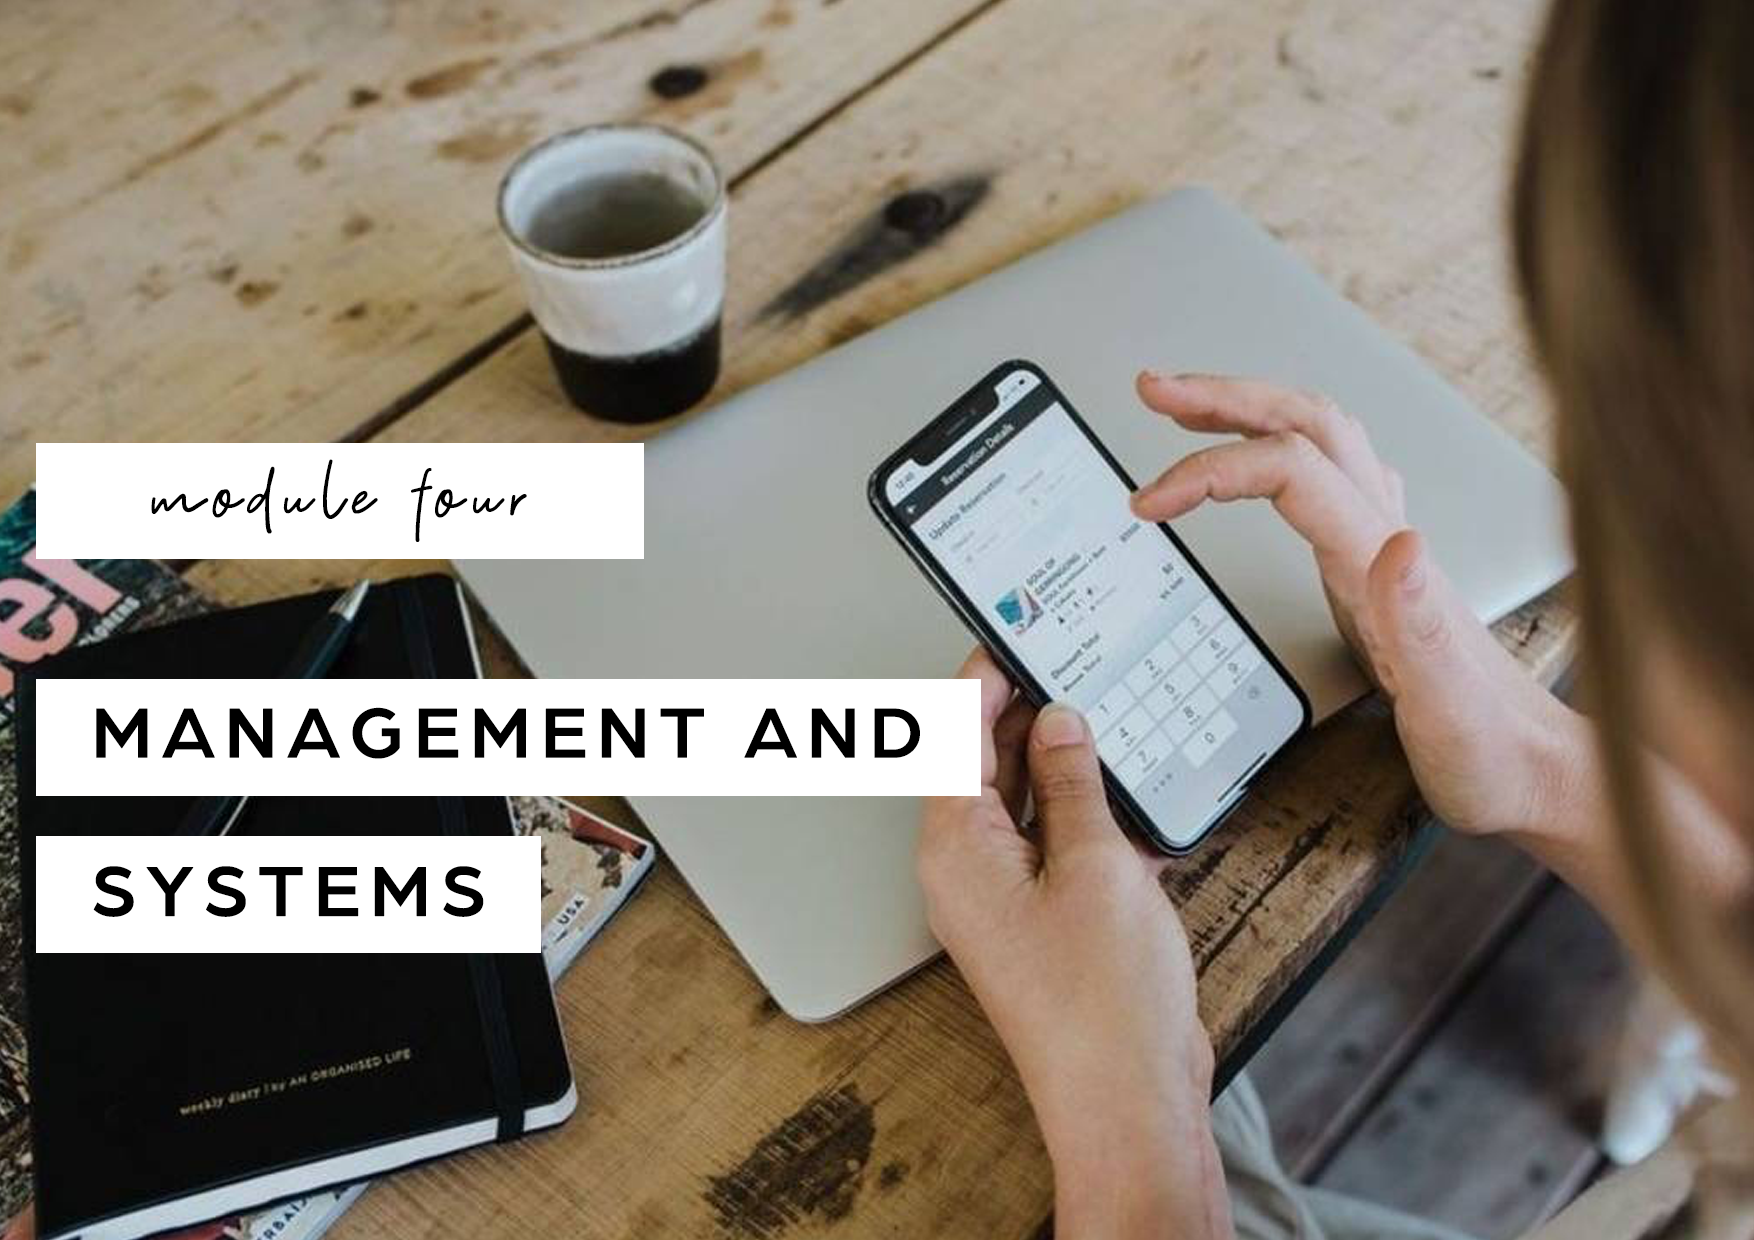 We compare the pros and cons of self-managing or having a manager, and give you the tools to decide whether going solo or outsourcing is the best for you. We look at the many booking systems which are available and do a checklist on their benefits and shortcomings, as well as the value of aligning with major channel managers such as Airbnb and HomeAway. And we show you how to automate as much as possible to save you time and energy.